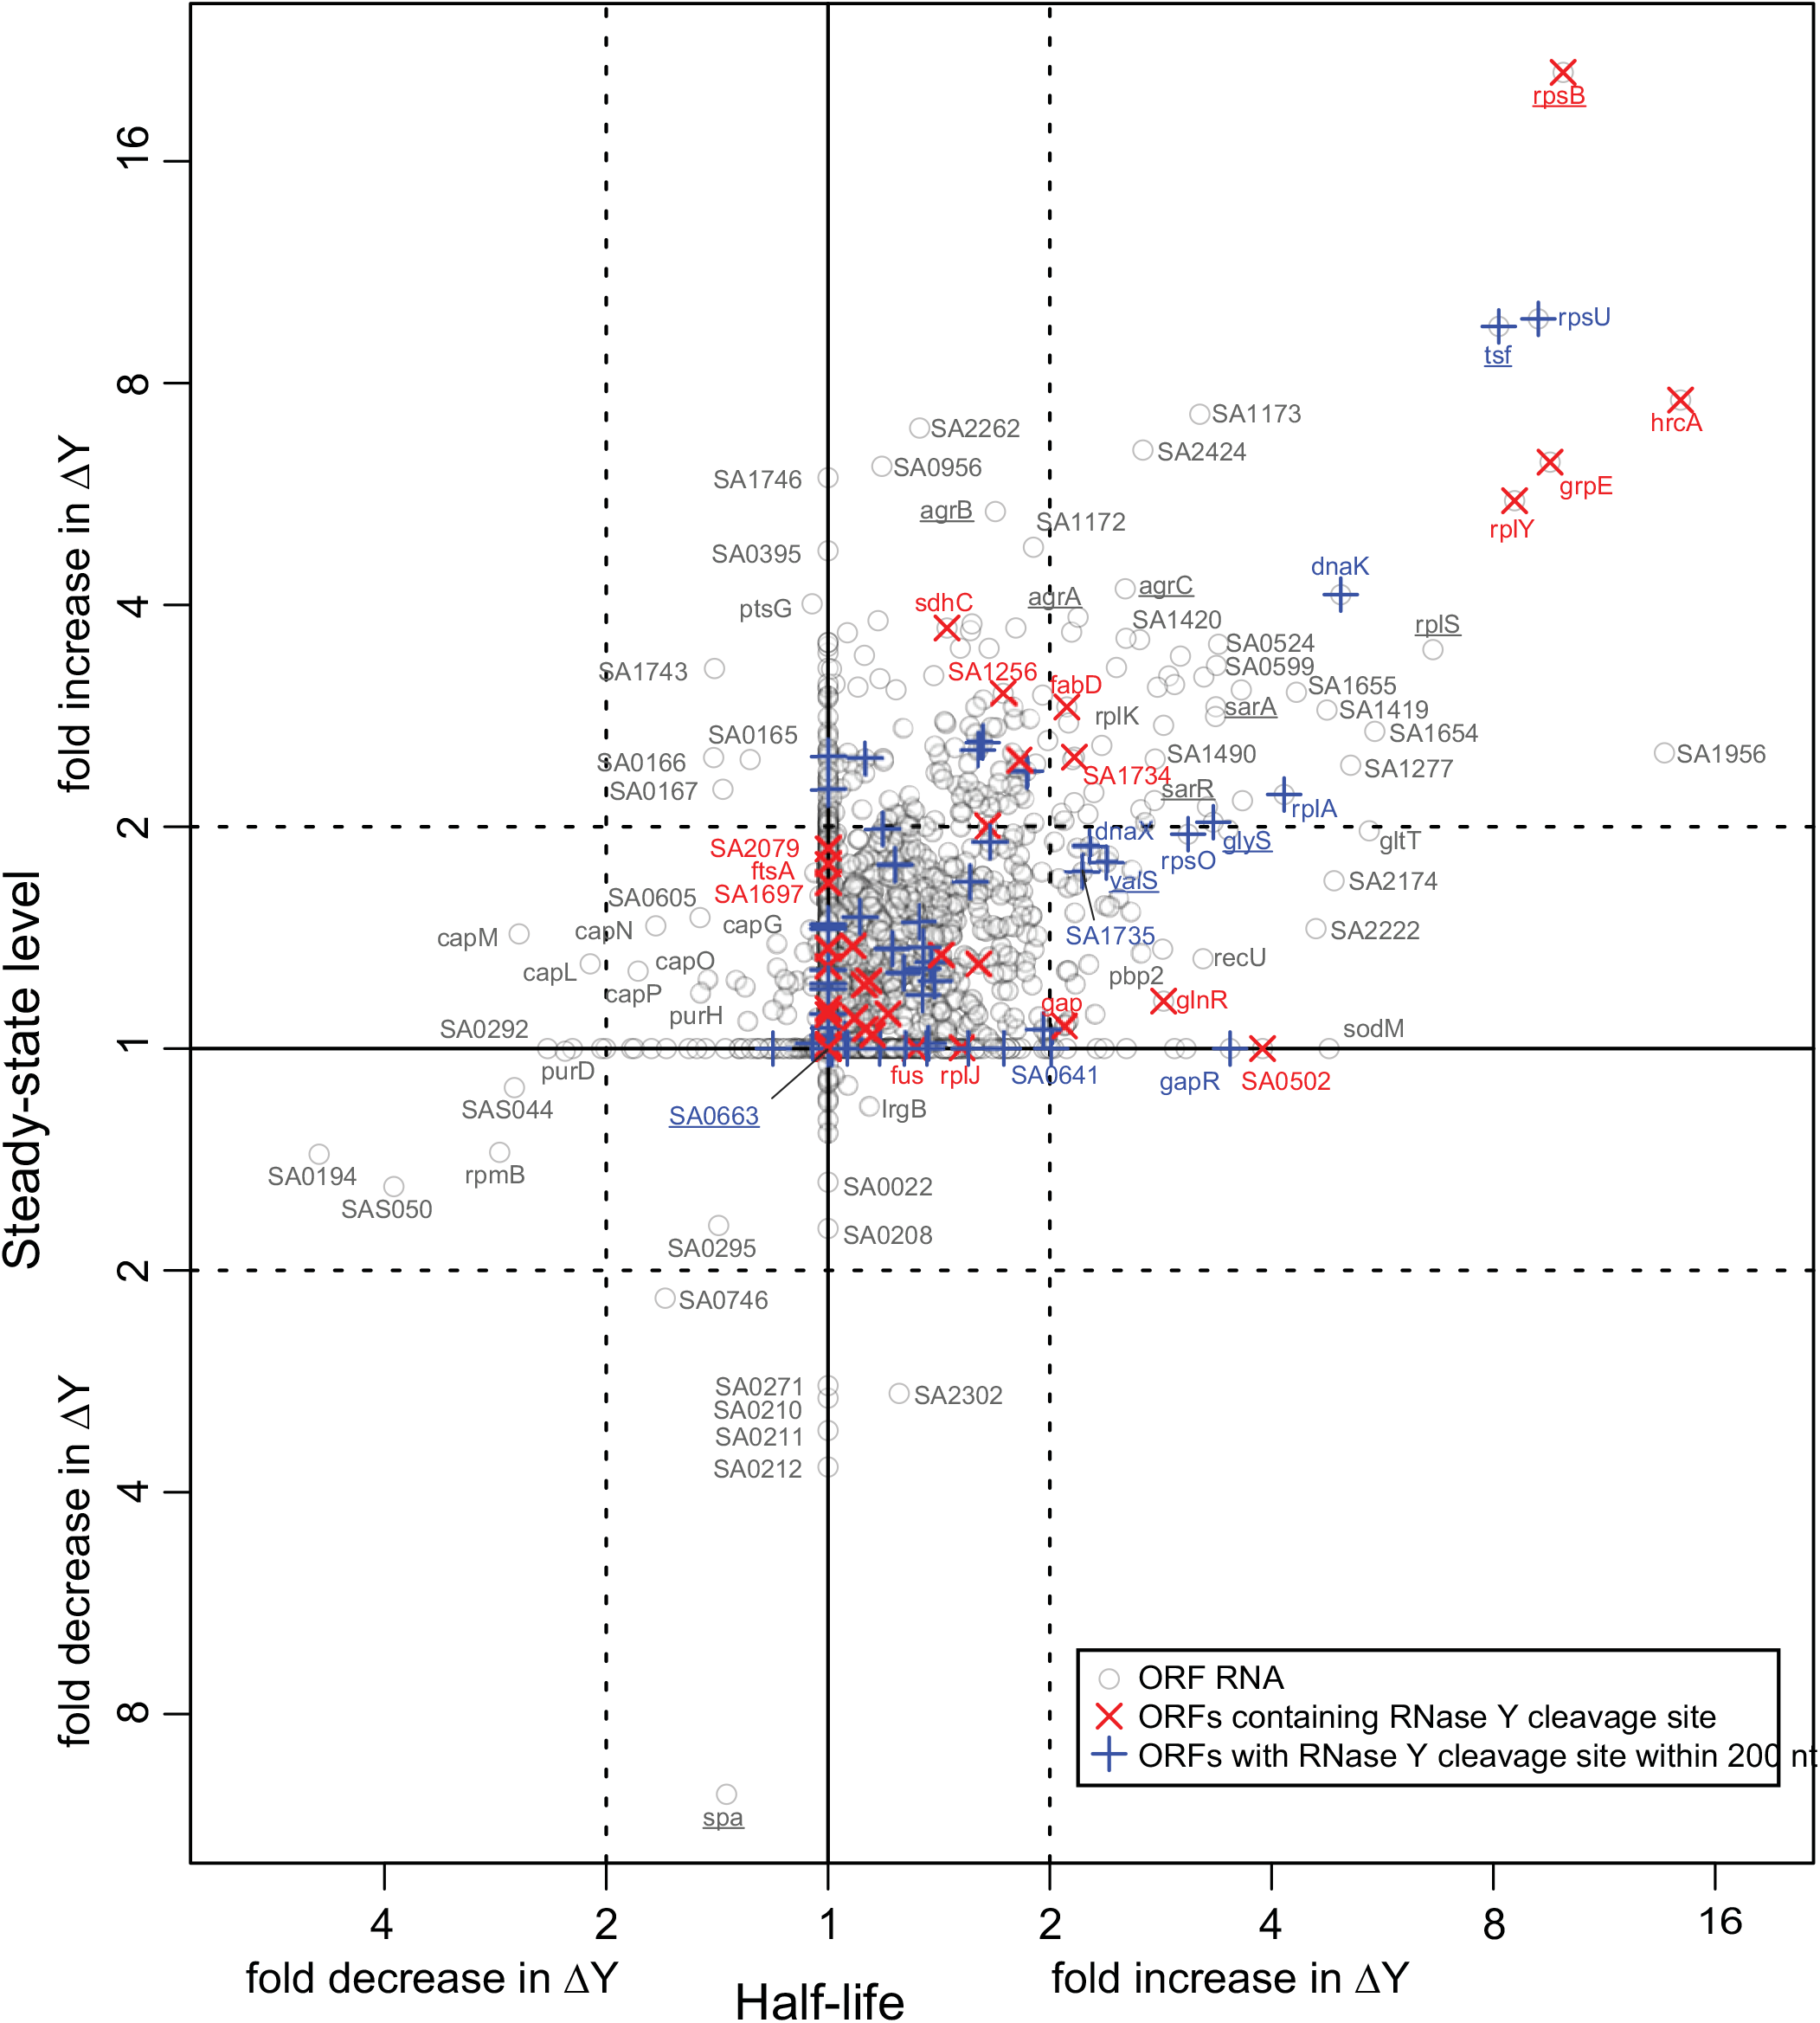 Correlation between changes in half-lives and steady-state levels.